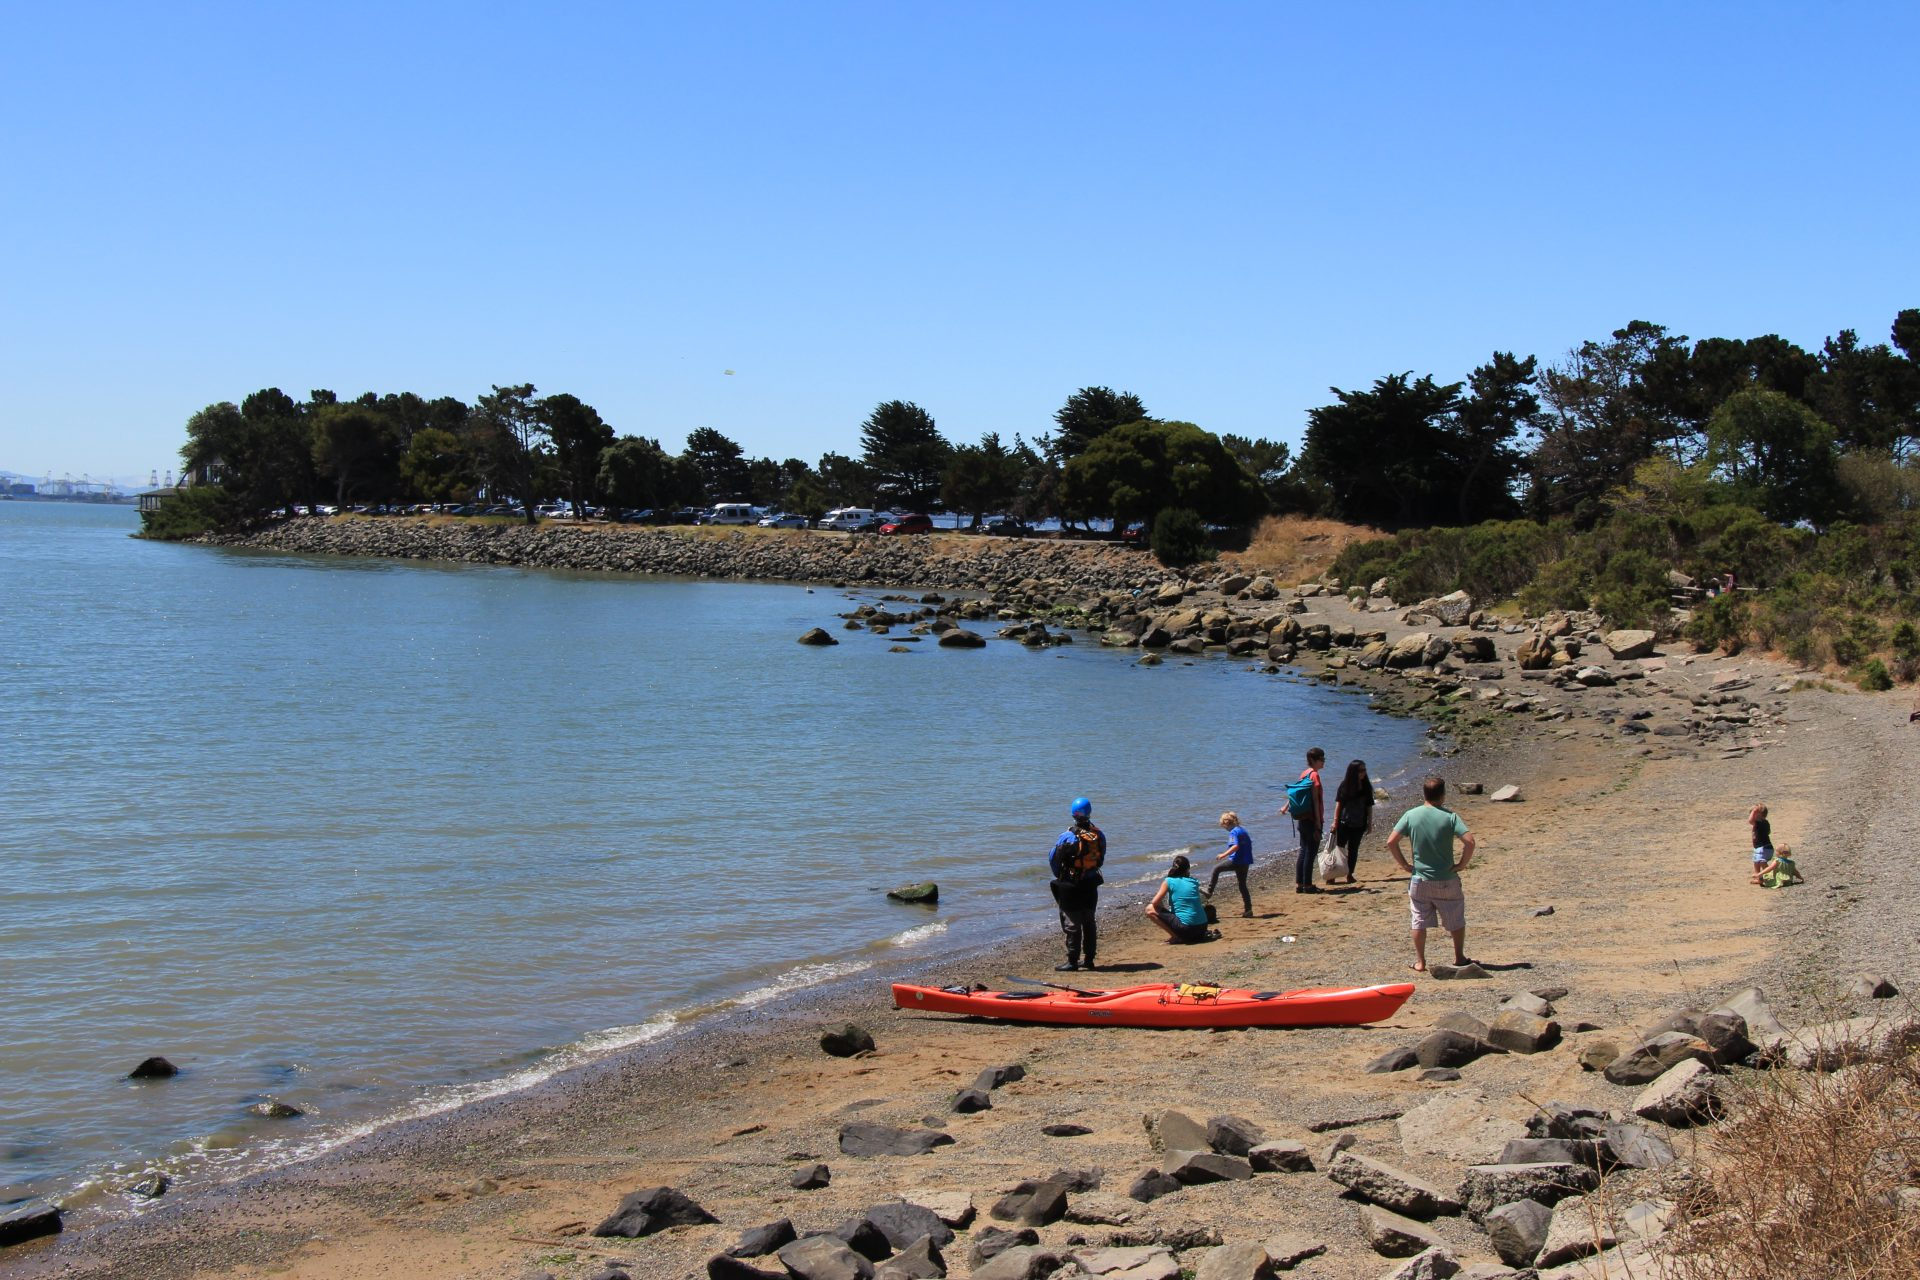 Single red kayak with 5 adults and 3 children milling around on rocky beach